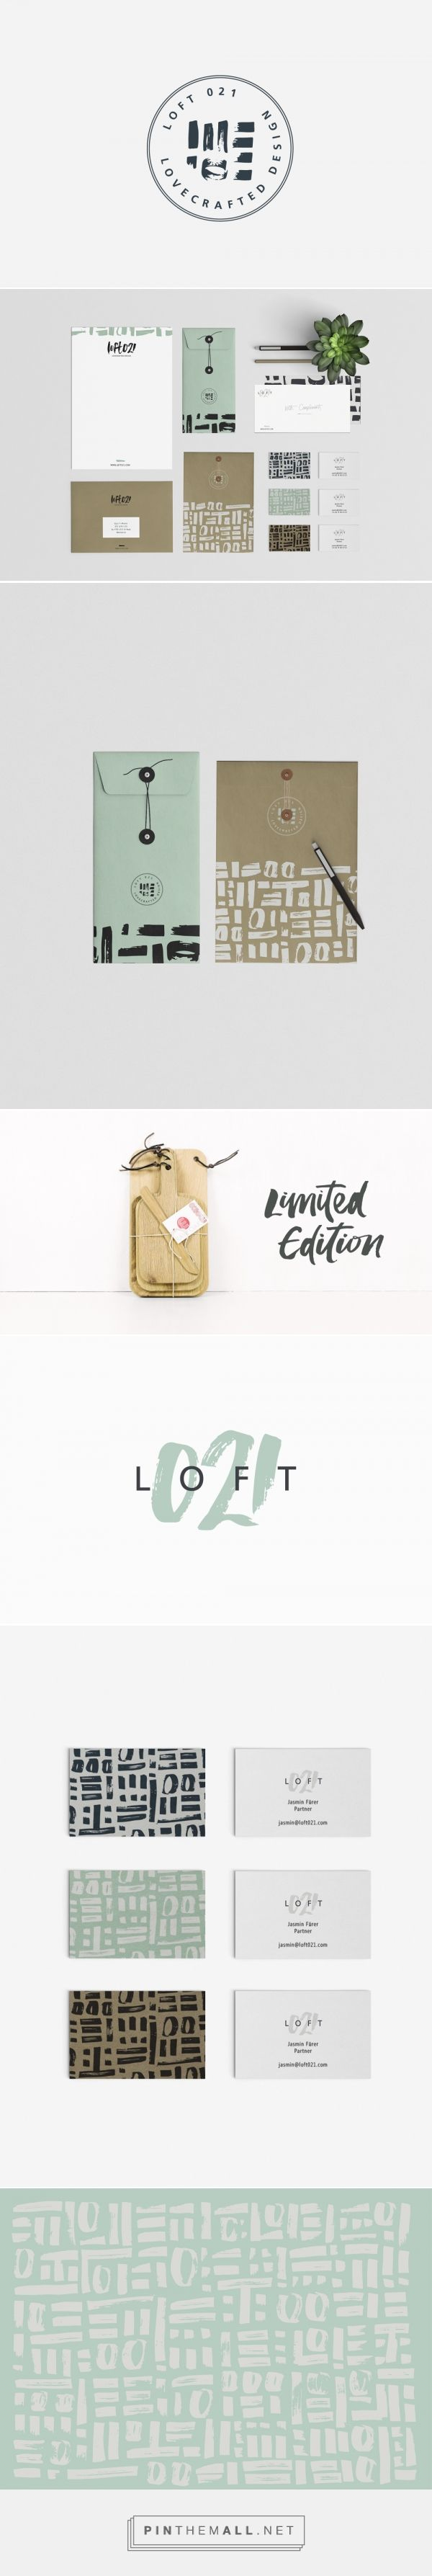 Loft021 Love Crafted Design Branding by Cocorrina | Fivestar Branding Agency – Design and Branding Agency & Inspiration Gallery